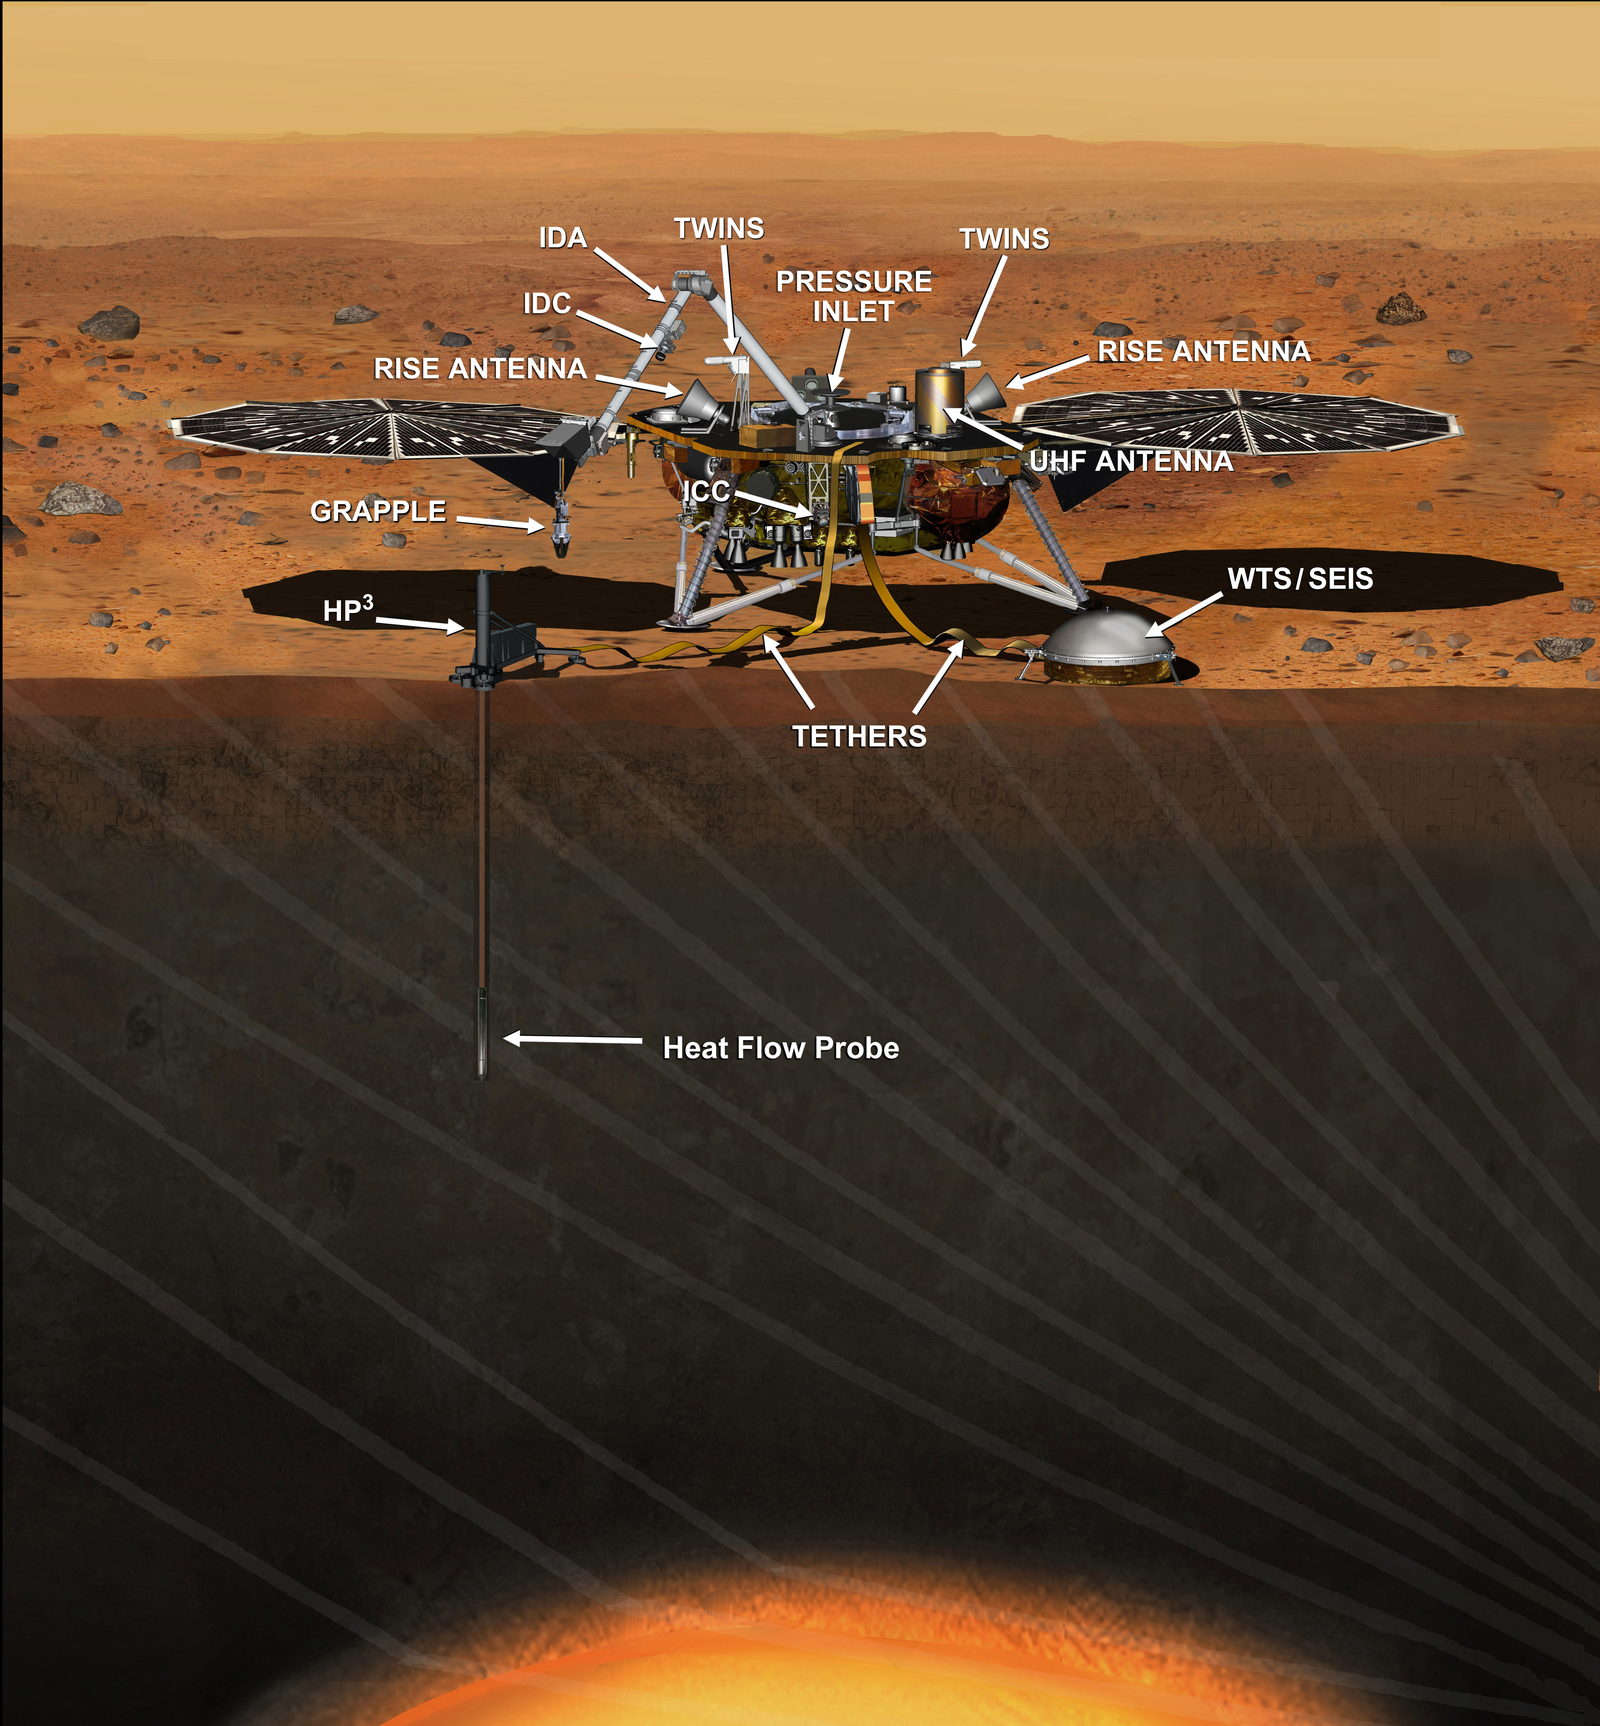 This artist's concept depicts the stationary NASA Mars lander known by the acronym InSight at work studying the interior of Mars.